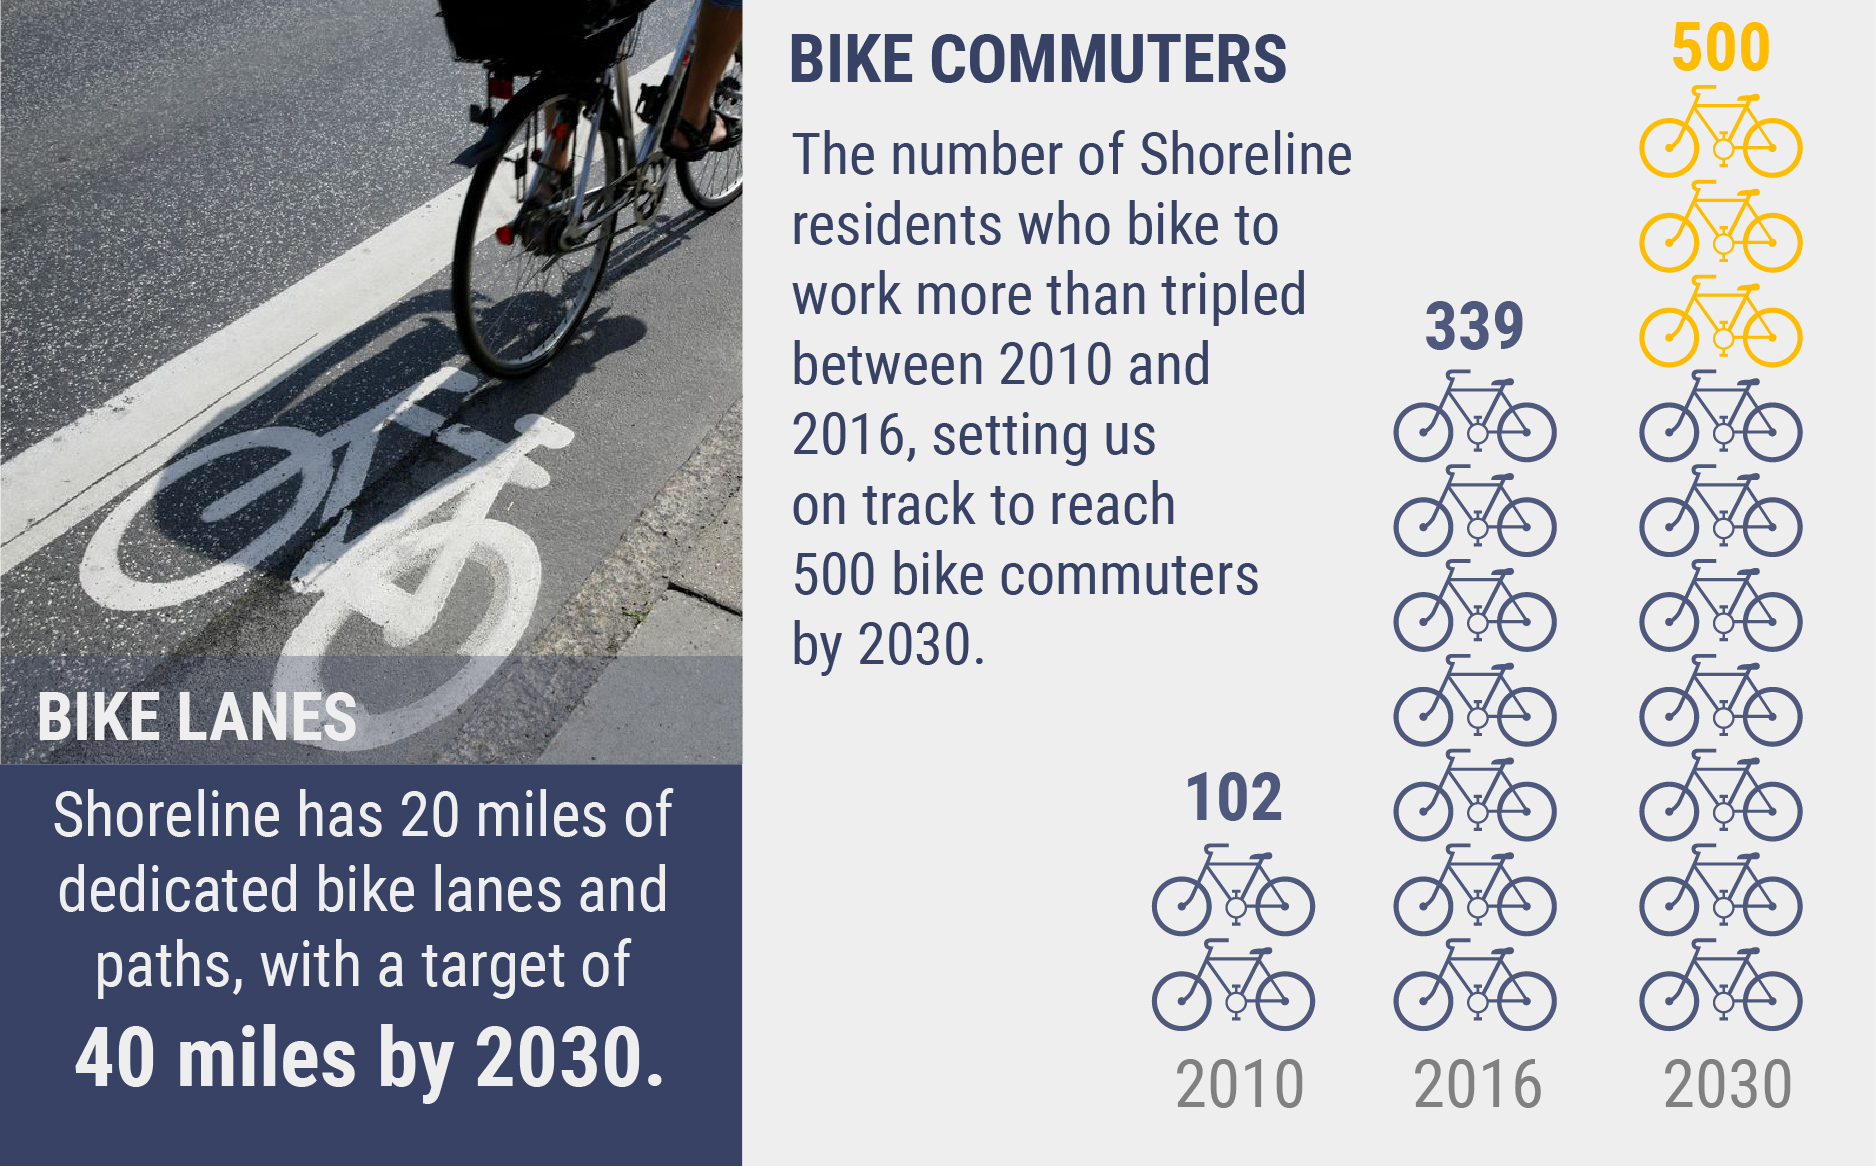 "Infographic stating, ""Shoreline has 20 miles of dedicated bike lanes and paths, with a target of 40 miles by 2030."" Also states, ""The number of Shoreline residents who bike to work more than tripled between 2010 and 2016, setting us on track to reach 500 bike commuters by 2030."""